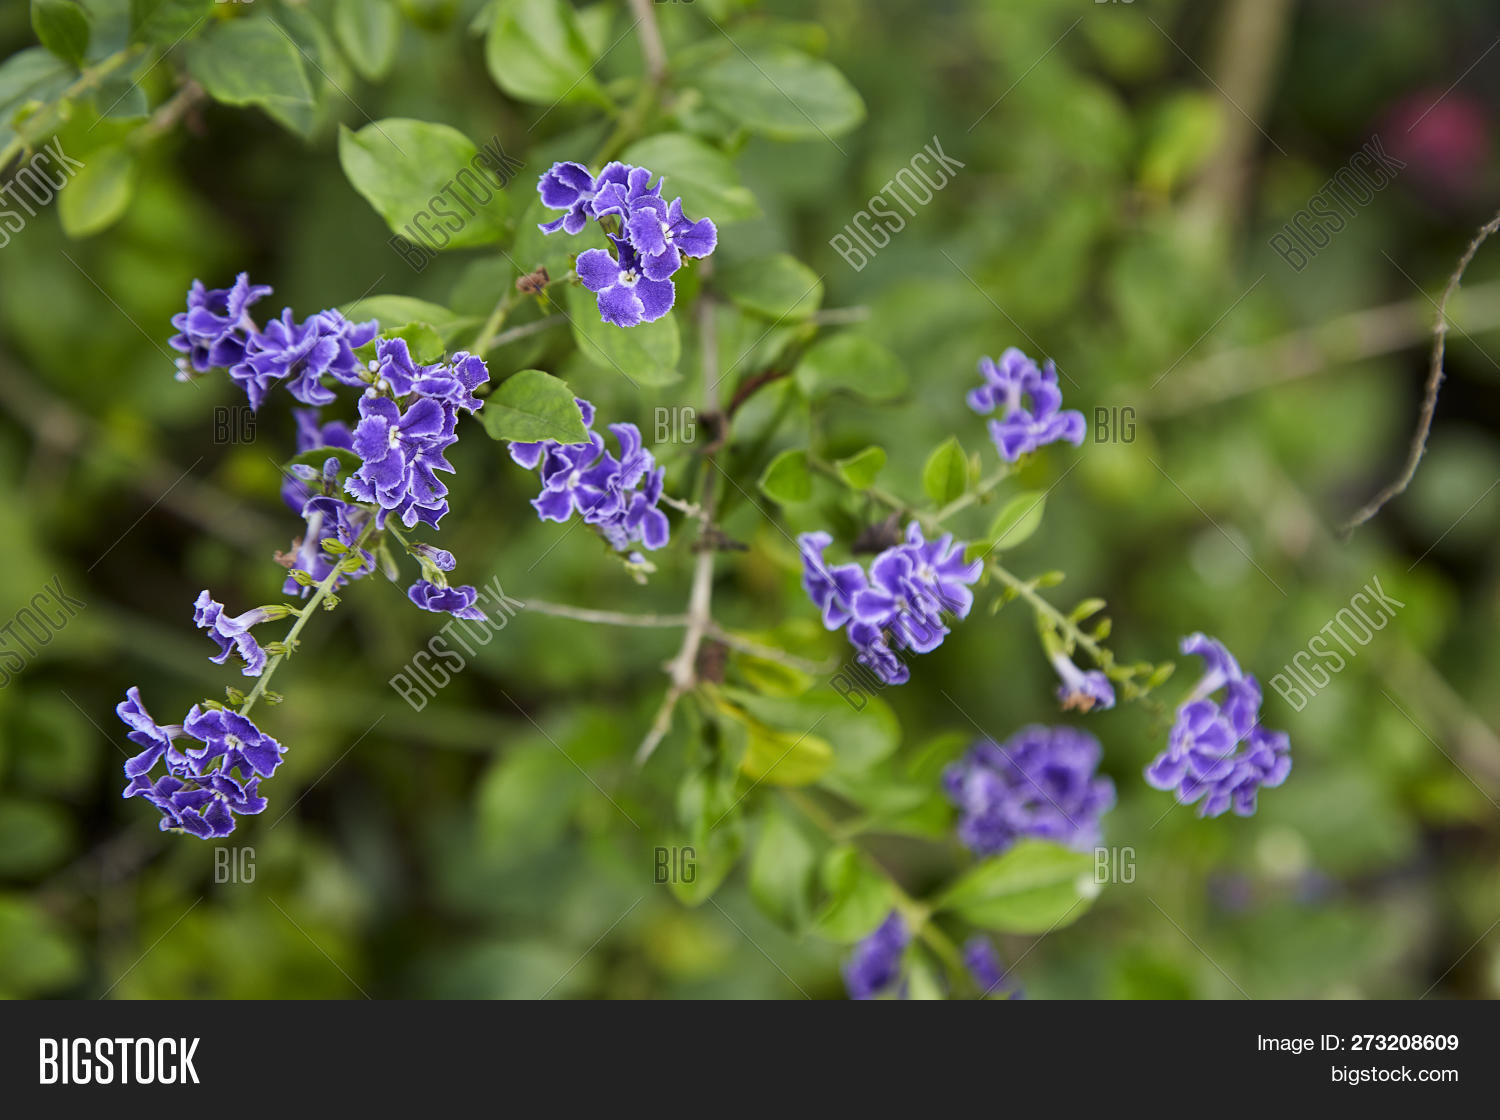 Small Purple Flowers Image Photo Free Trial Bigstock,Goodwill Furniture Donation Drop Off